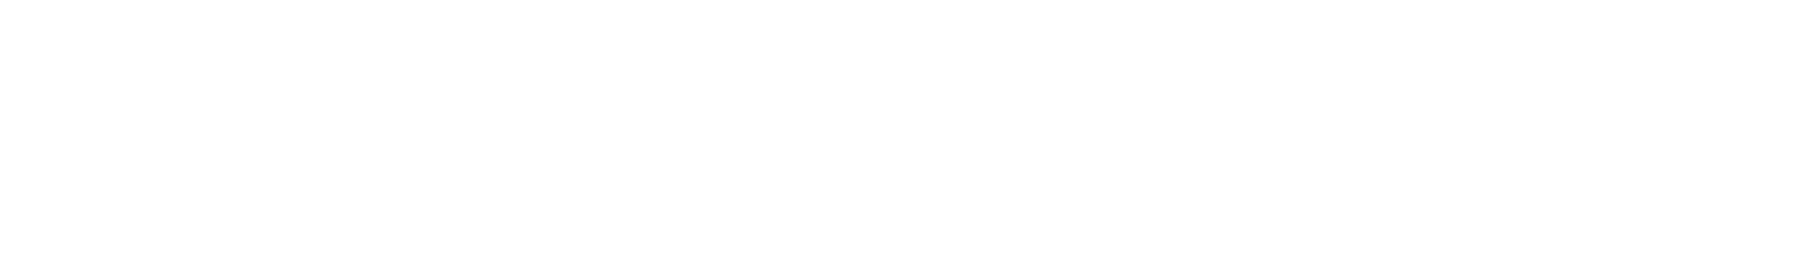 veh1 cutted sounds   137